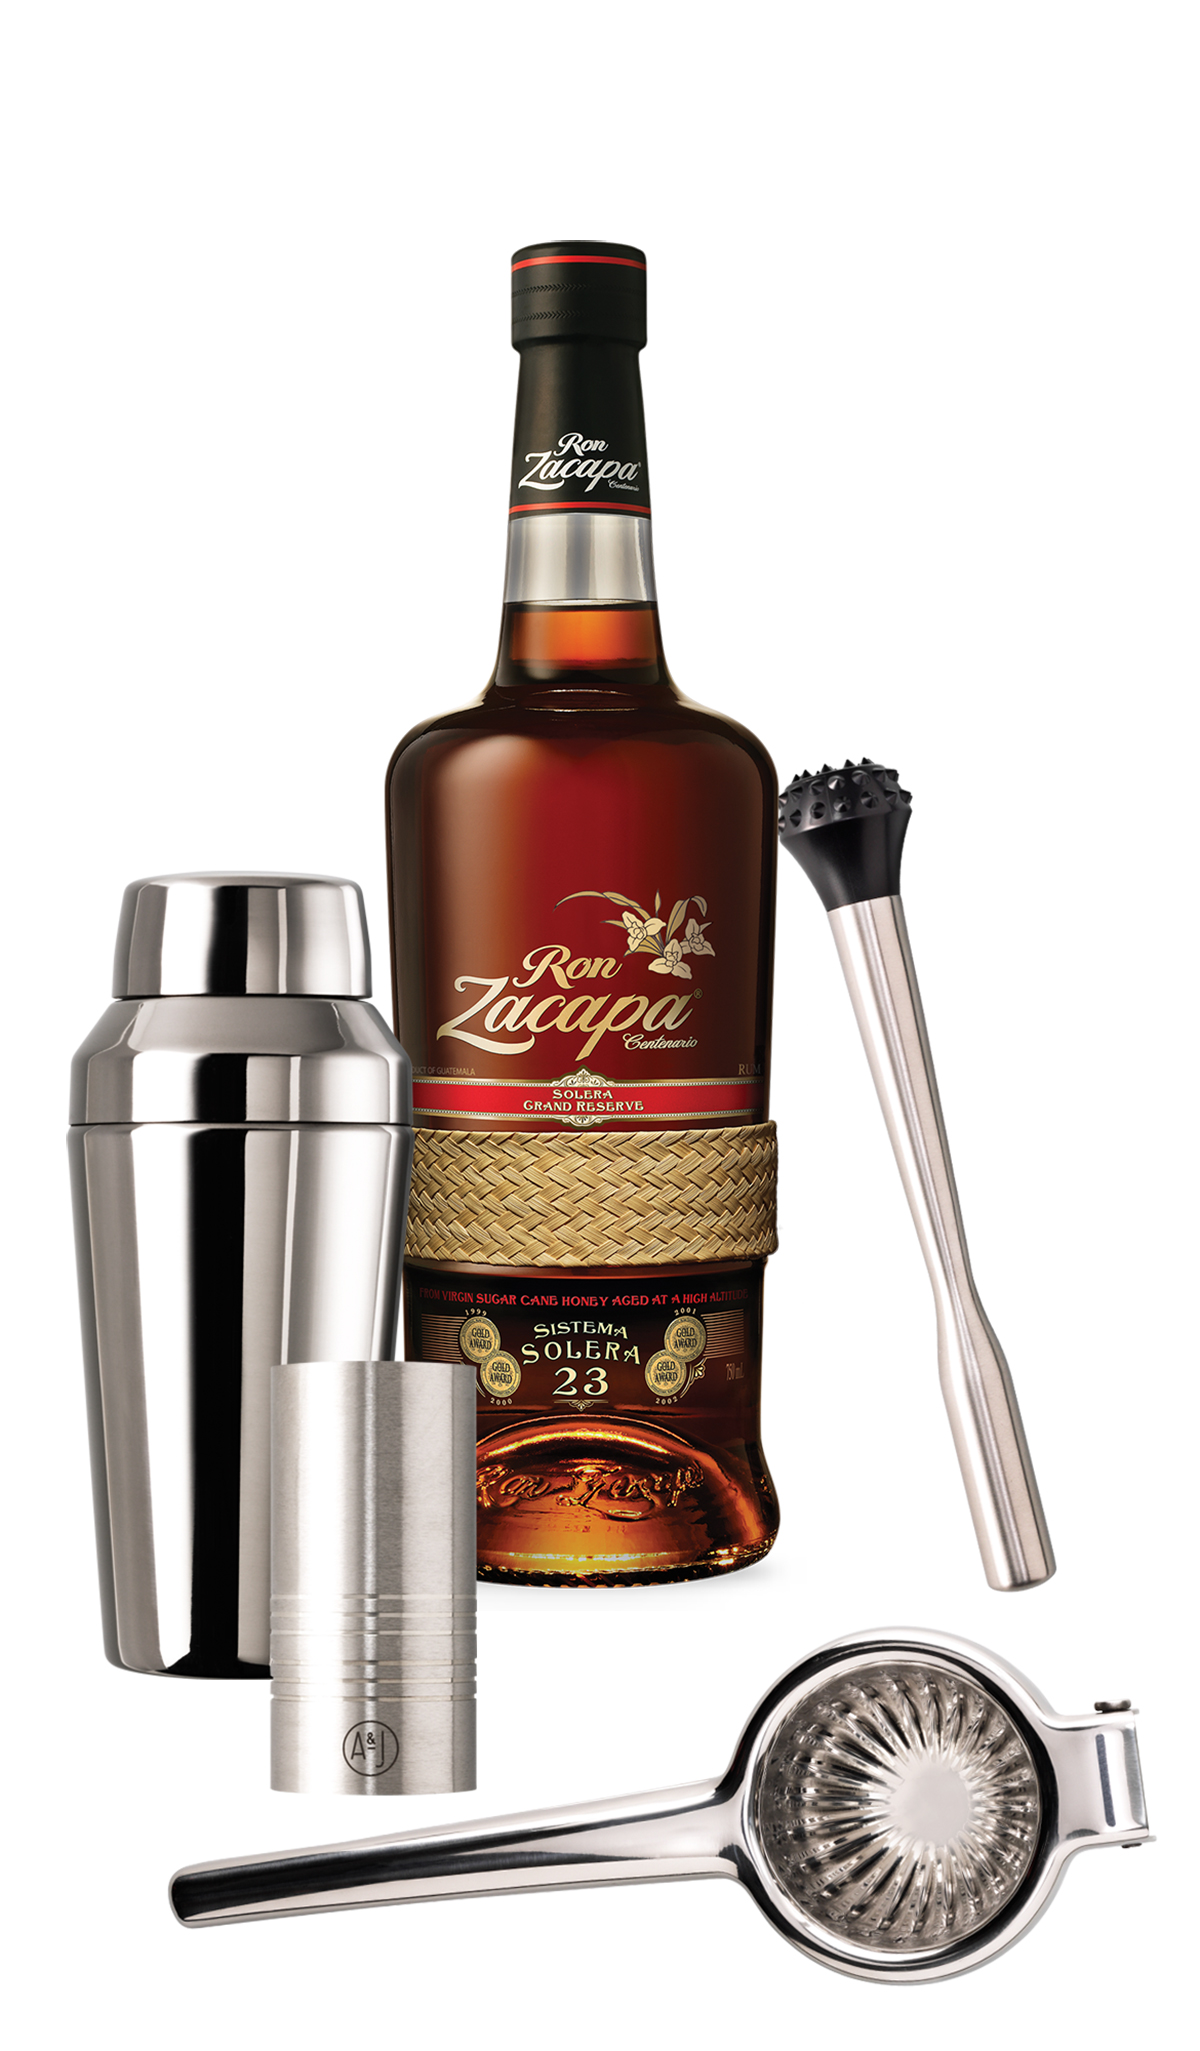 Alexander-and-James_Ron-Zacapa_Cocktail-Set